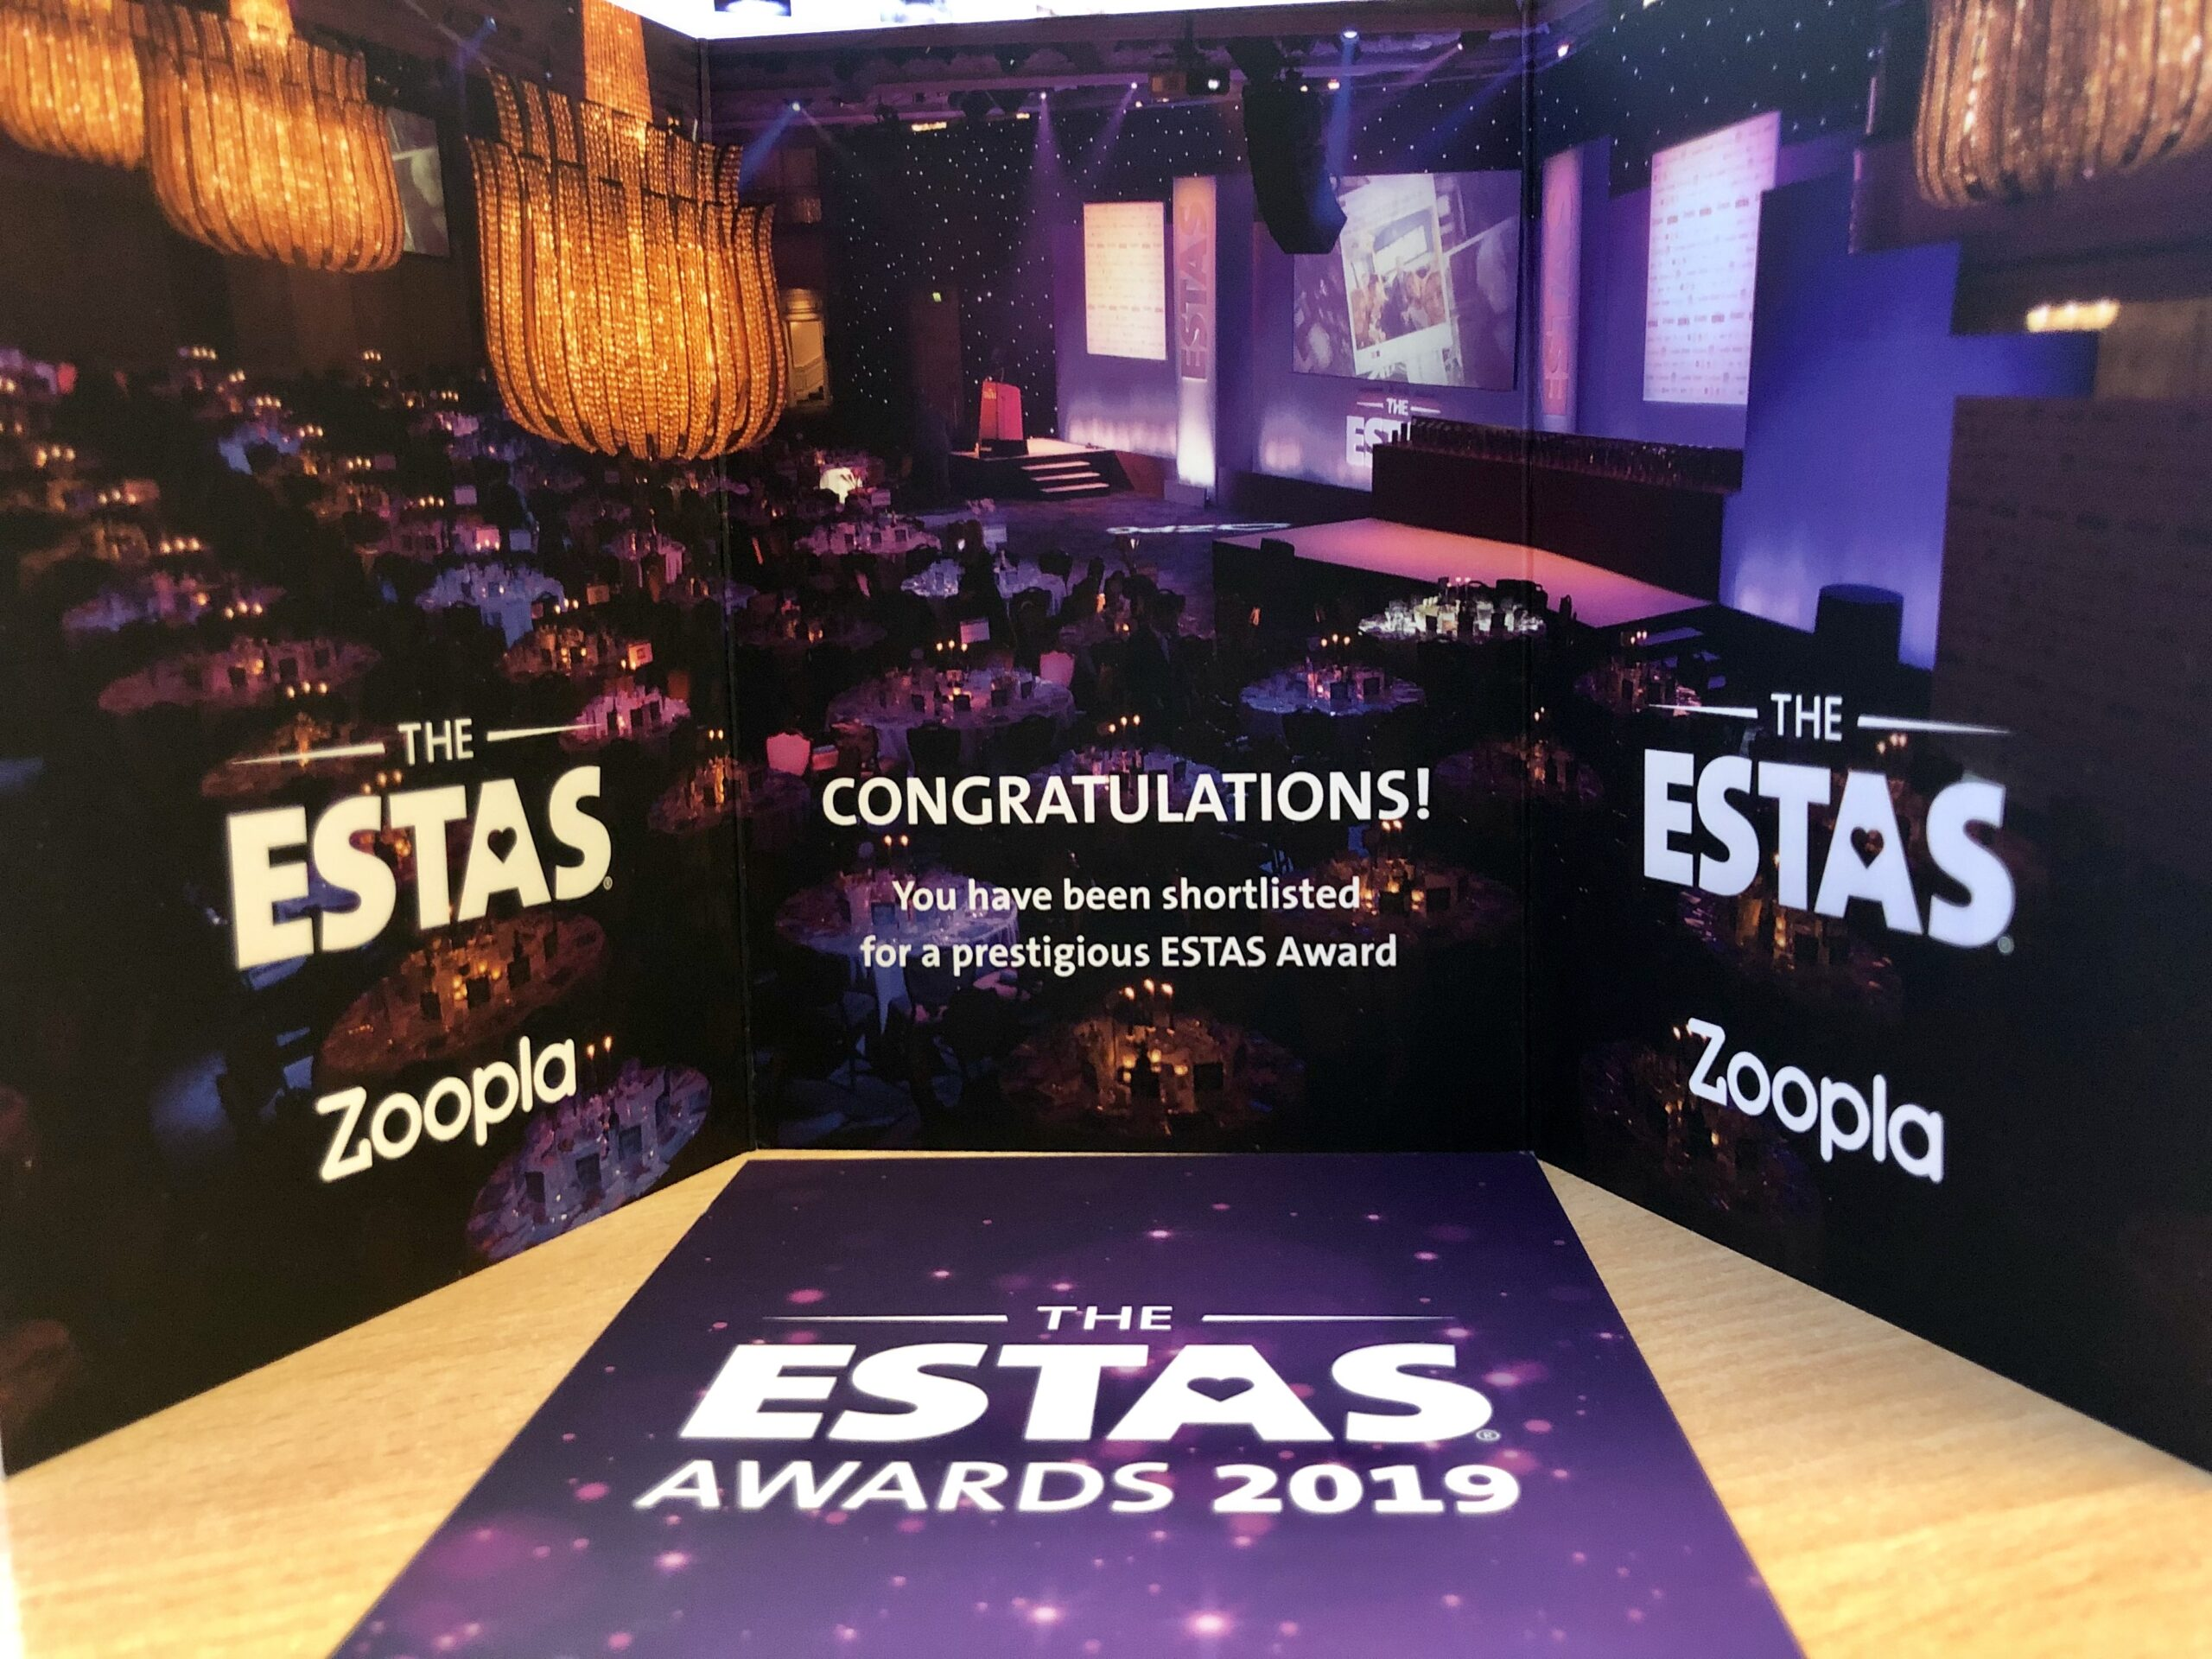 REGAL ESTATES MAKES THE SHORTLIST IN BIGGEST AWARDS FOR LETTING AGENTS AGAIN!